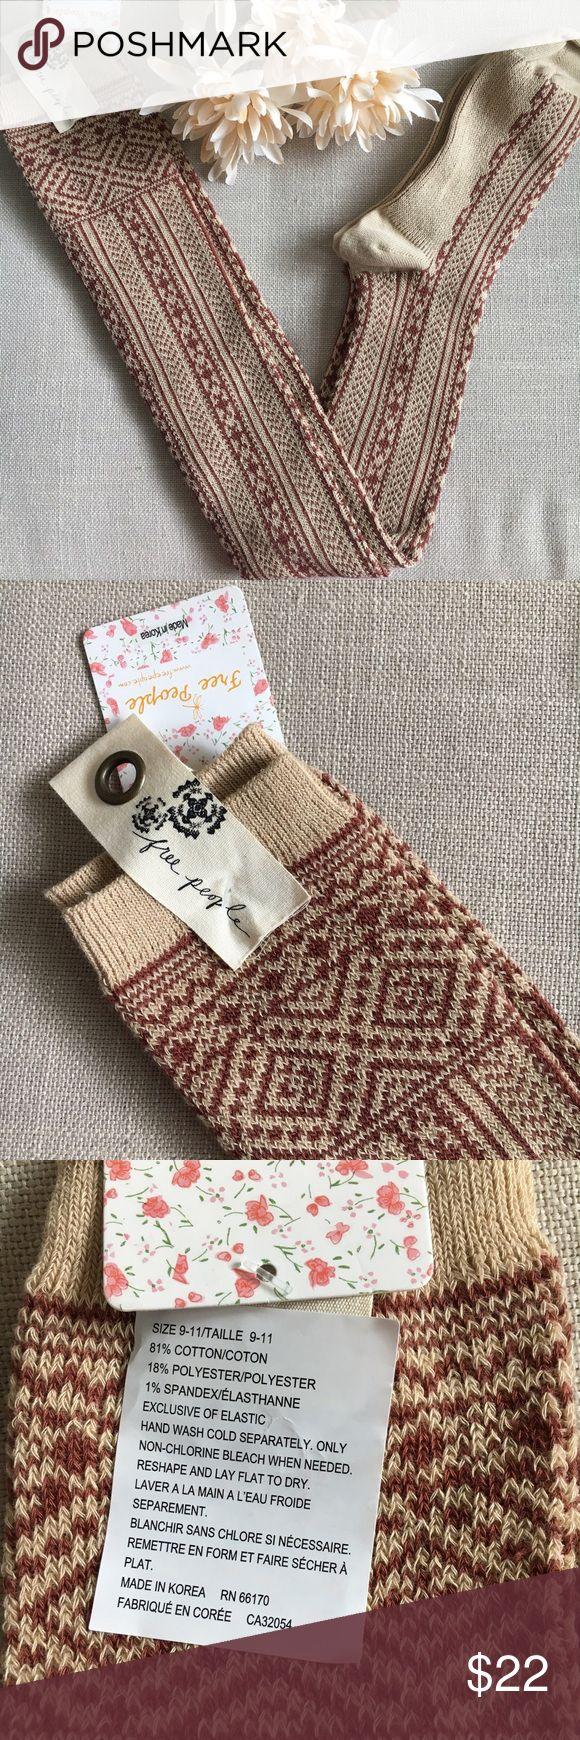 Free People Tea/Spice Over The Knee Socks These Free People Trailing Jade Tea/Spice Over The Knee Socks are new with tags, never worn. These are amazing socks, very warm and cute and cozy! Perfect socks to wear with boots! Size is 9-11. Free People Accessories Hosiery & Socks